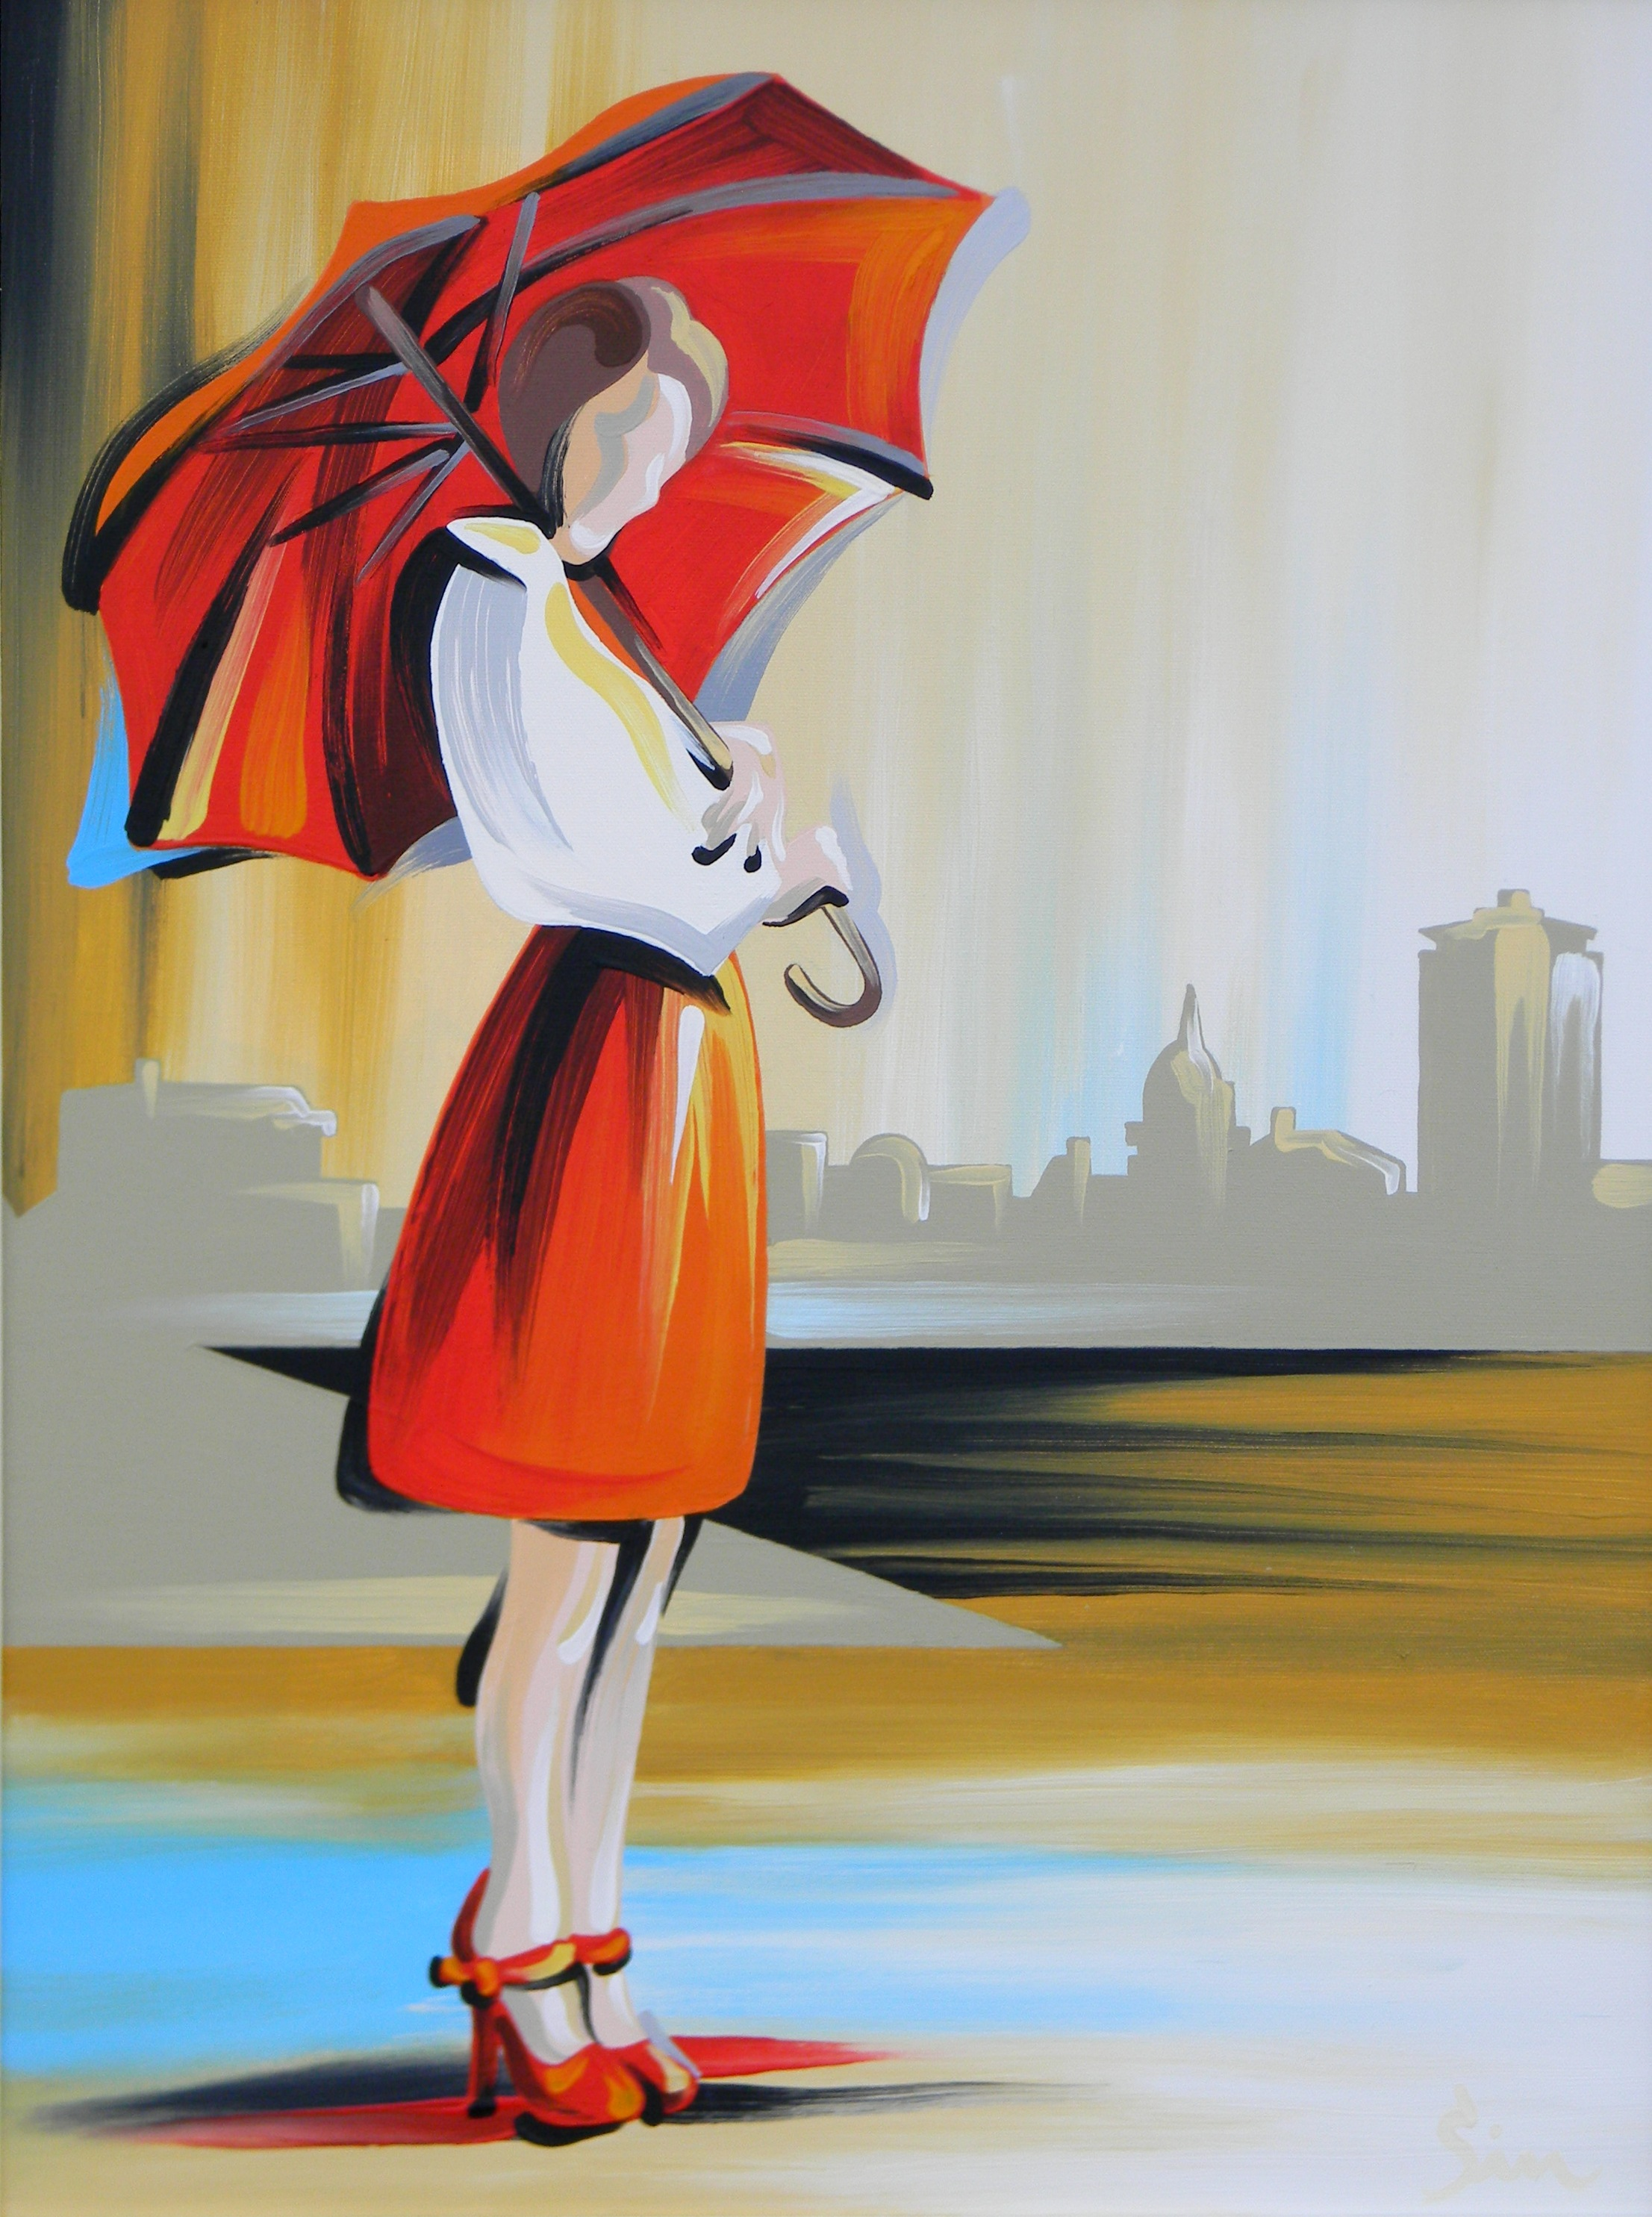 'Lady with Umbrella'